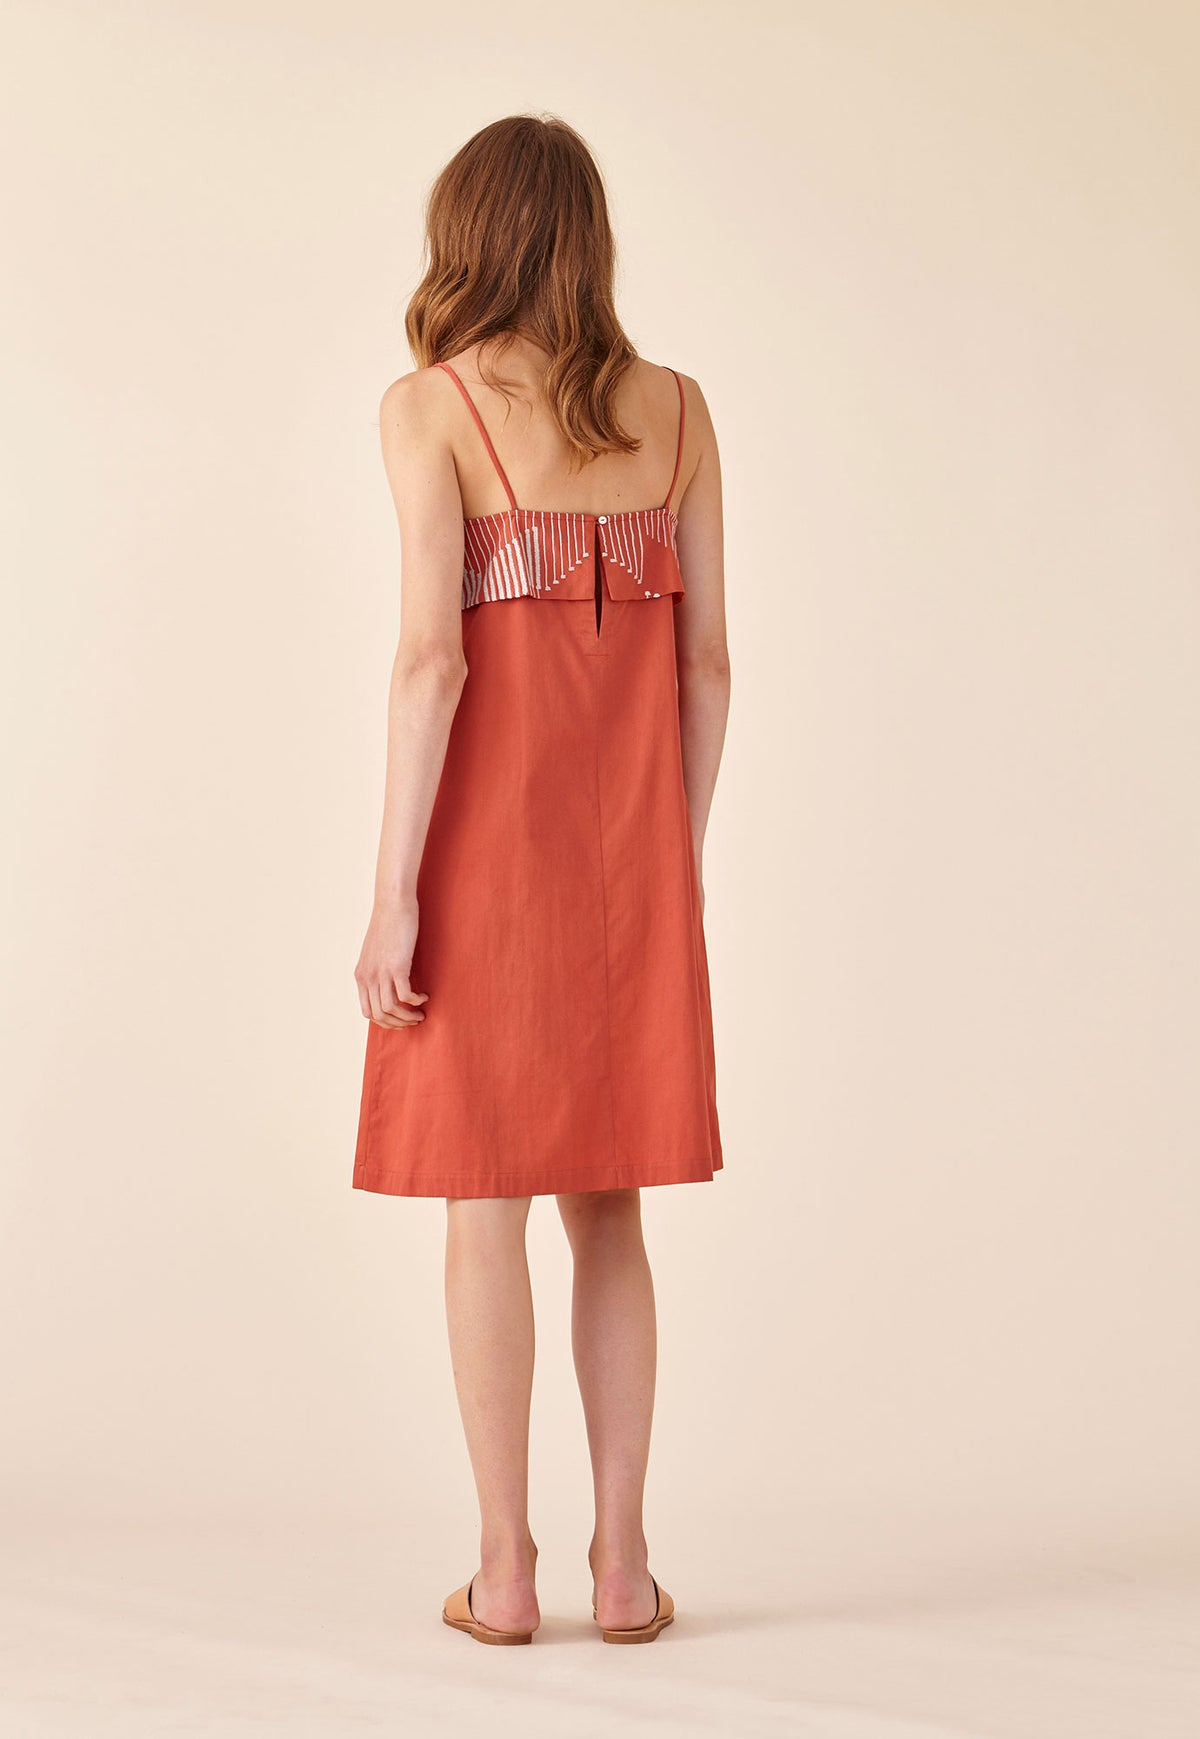 Embroidered Dress - Sienna